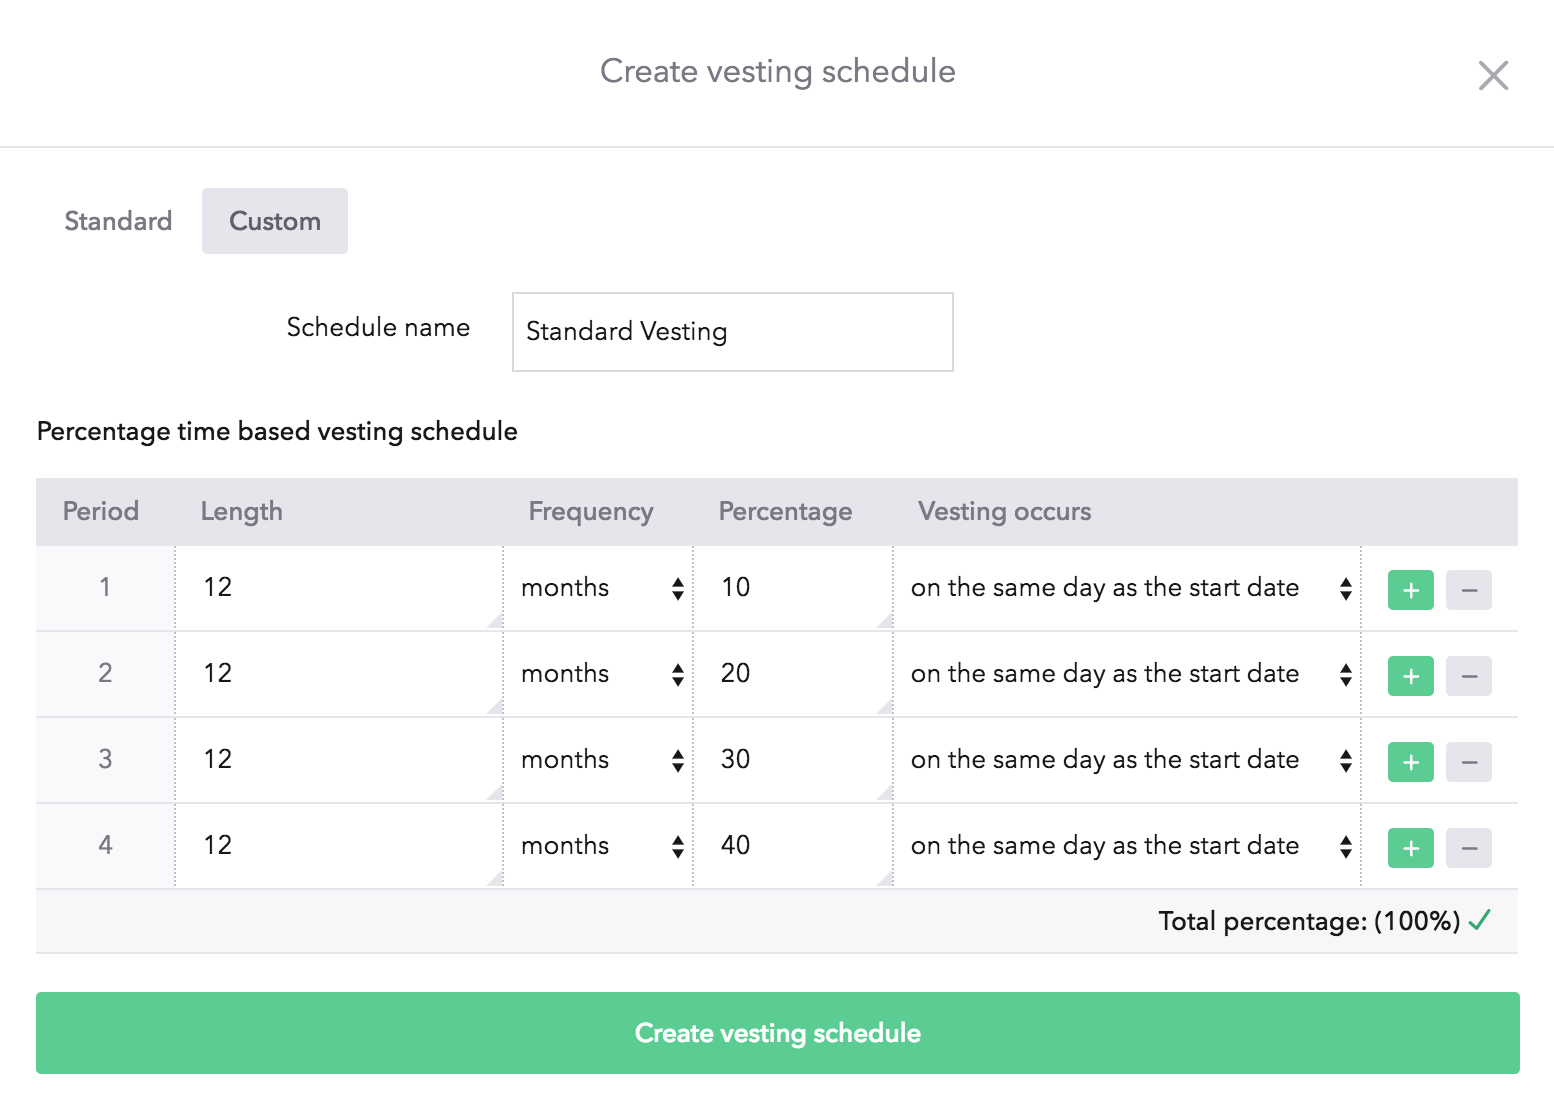 Create a vesting schedule carta help center for a custom vesting schedule template tranches can be added with various lengths frequency daysmonthsyears percentage must total to 100 yadclub Choice Image